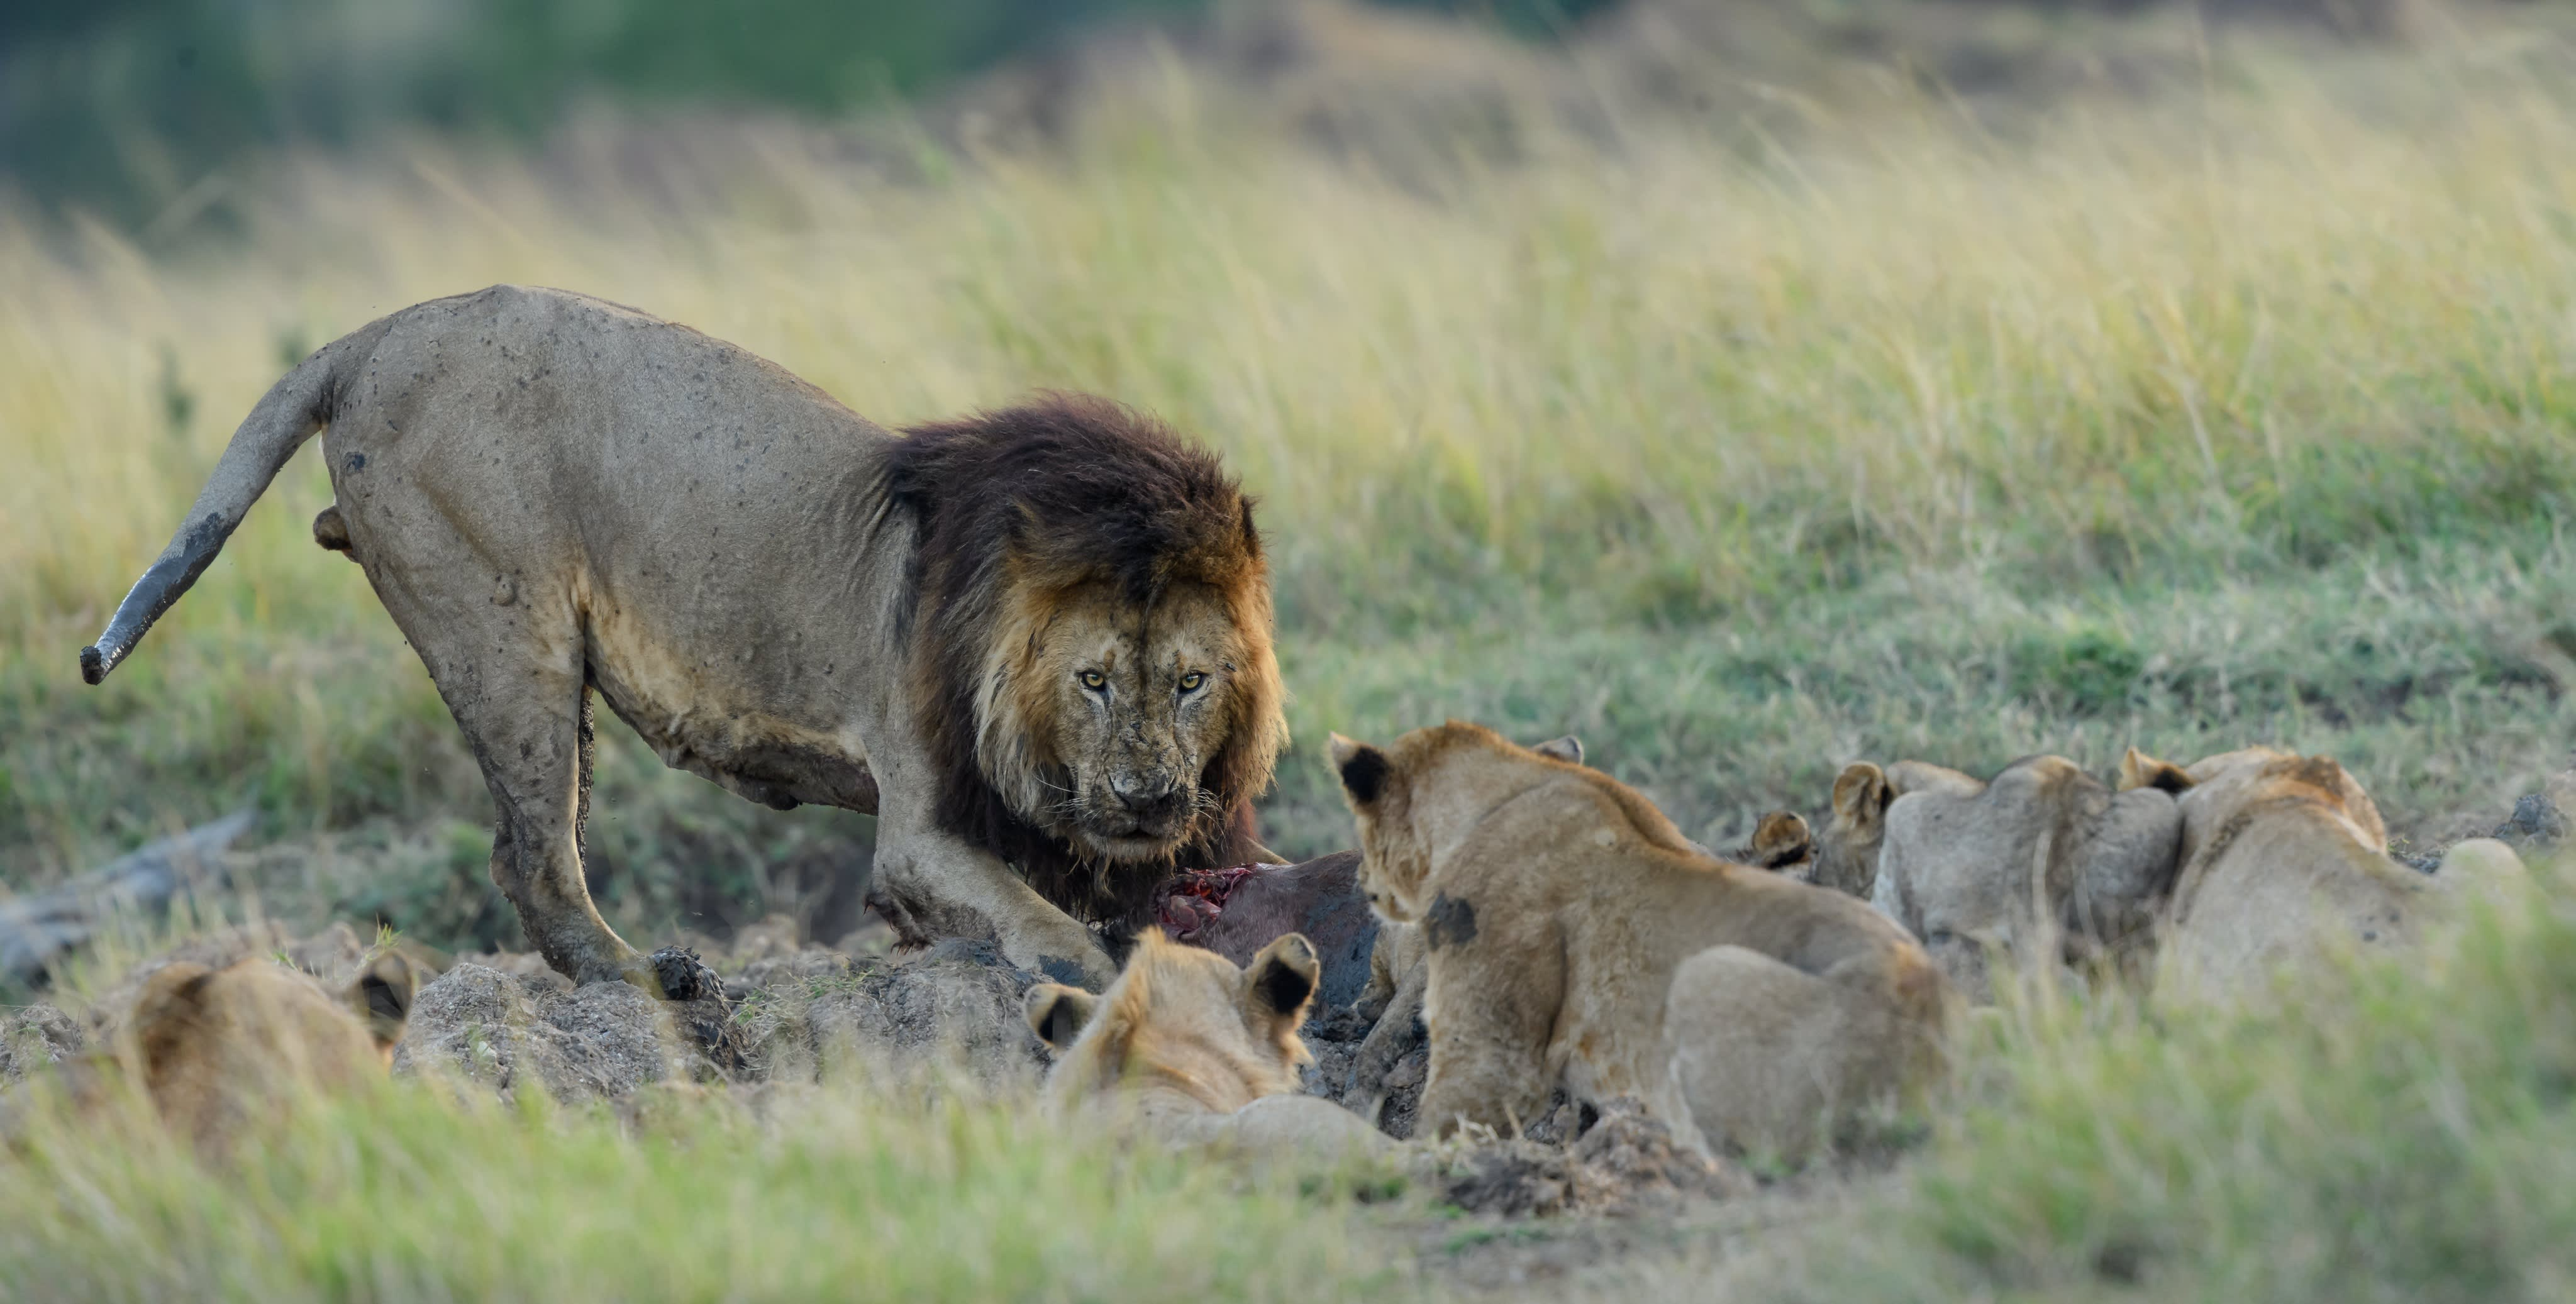 No Family when it comes to feeding time with Lions.